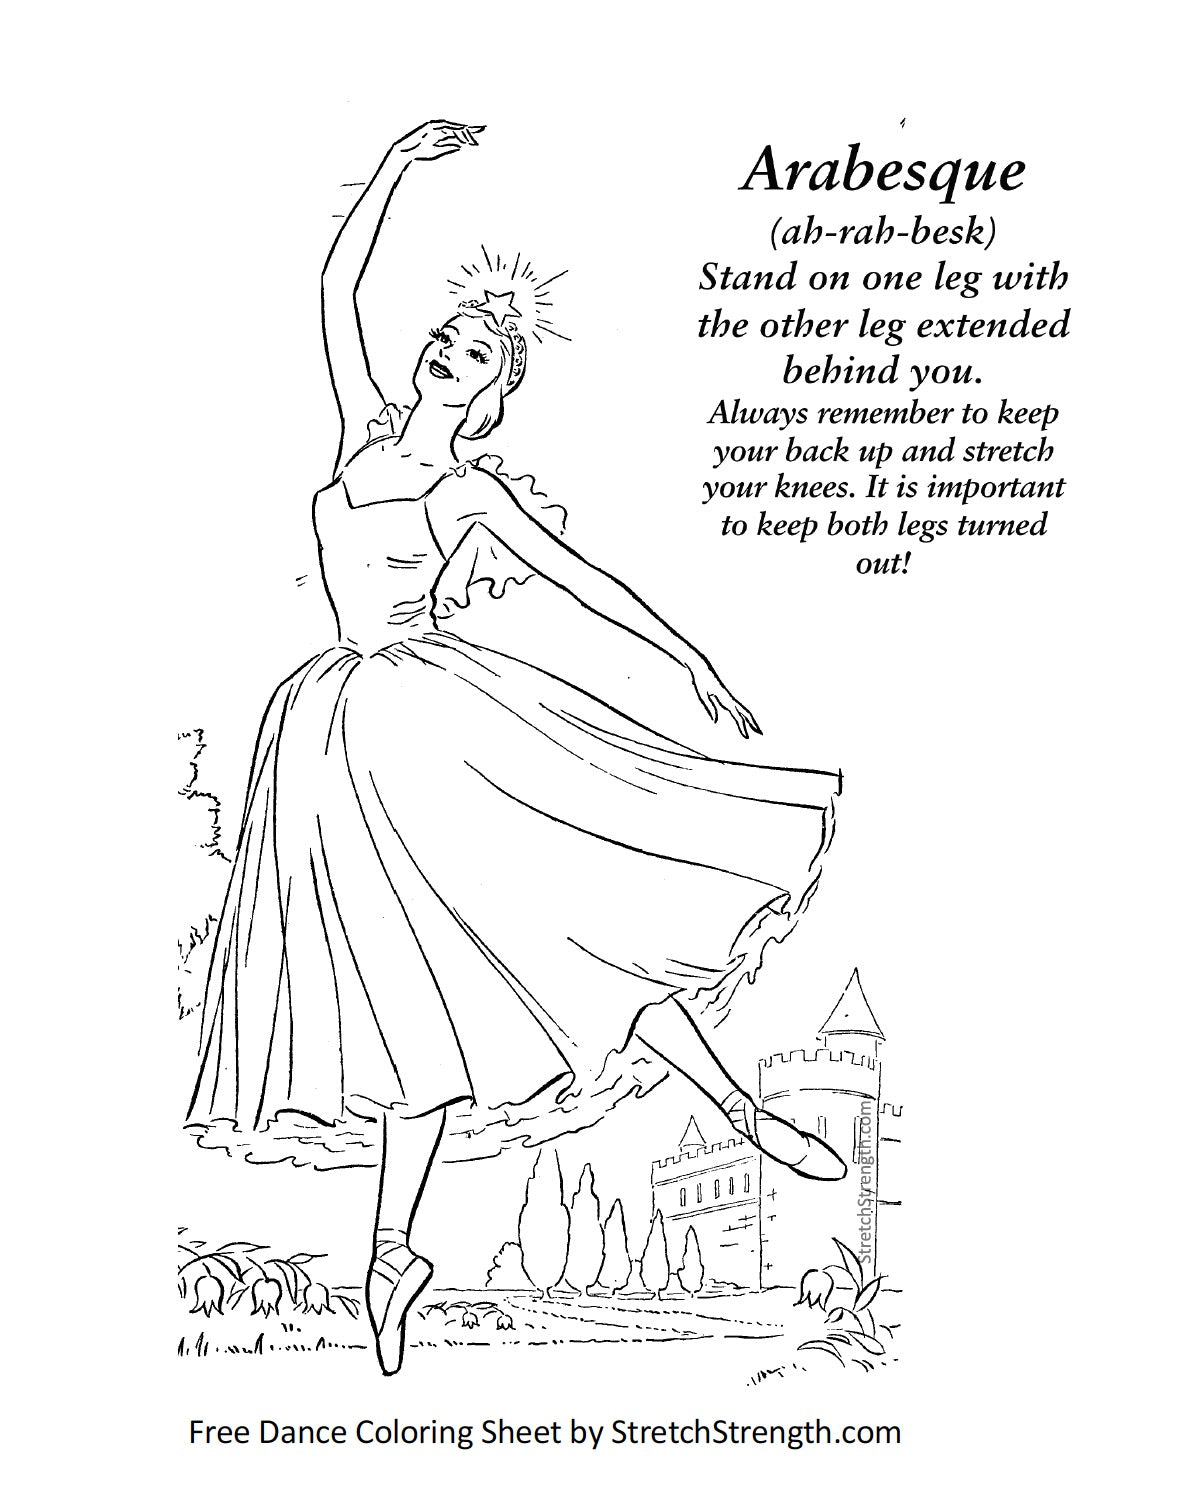 Free Ballet Dancer Vocabulary Coloring Sheet - Arabesque ...